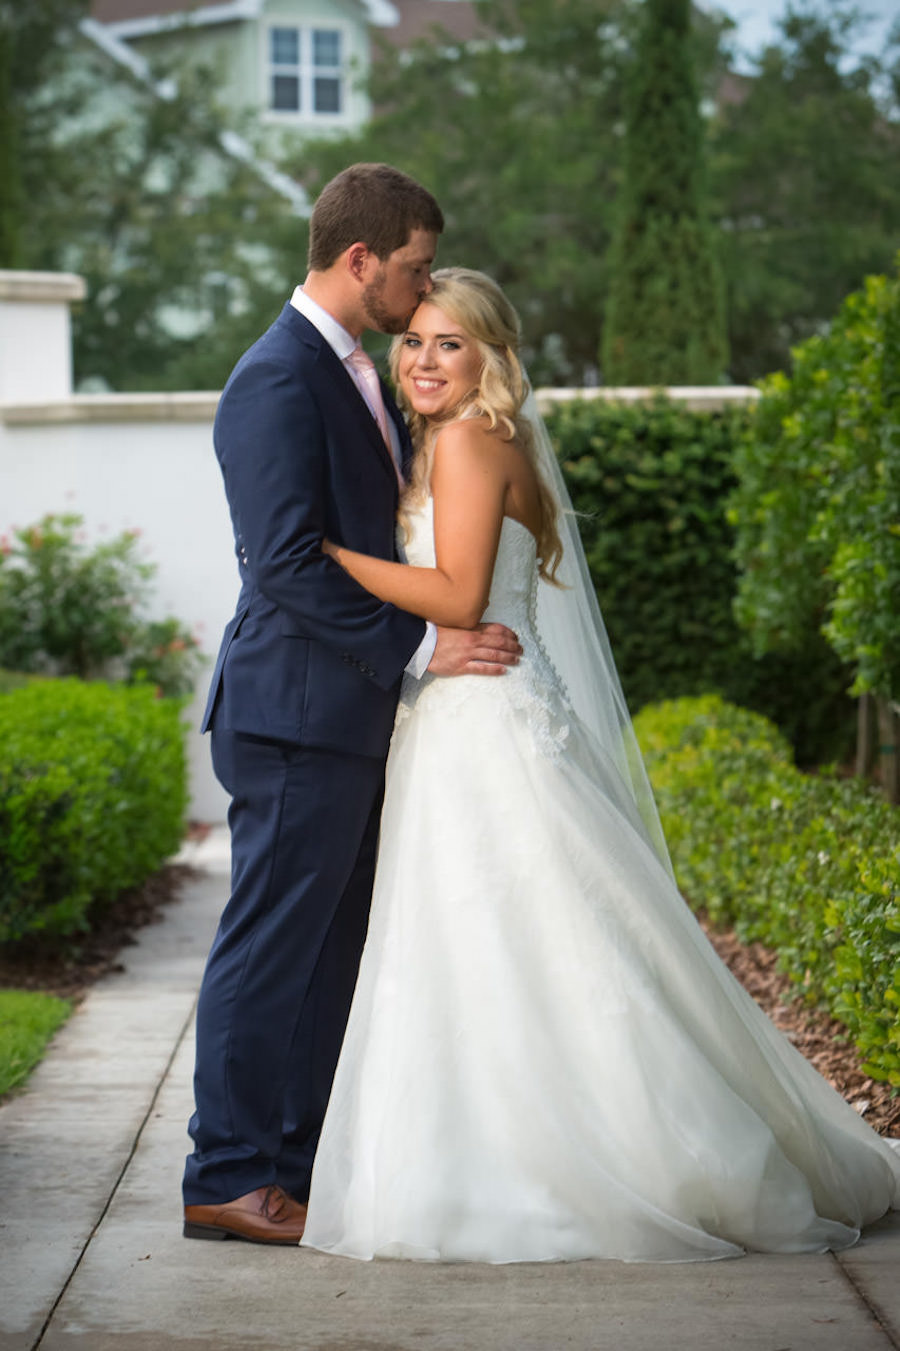 Outdoor Bride and Groom Wedding Portrait in Navy Blue Suit and Ivory Watters Wedding Dress | Tampa Bay Wedding Photographer Jeff Mason Photography